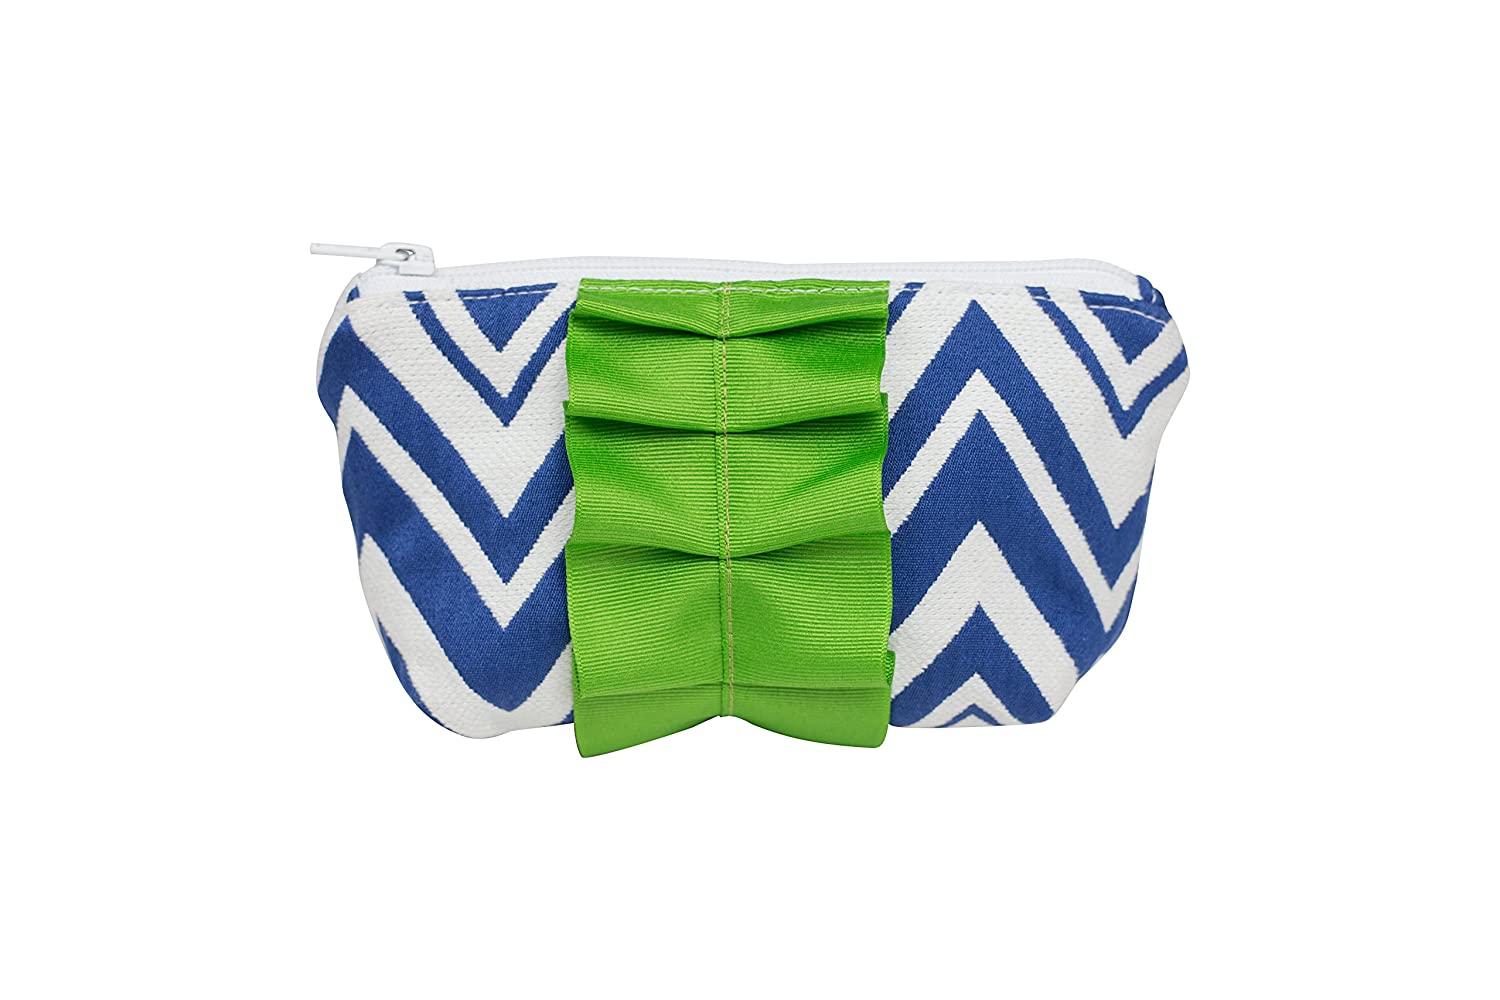 Caught Ya Lookin' Mother's Cosmetic Bag, Royal Chevron with Green Trim by Caught Ya Lookin' B00ZZQDSX0